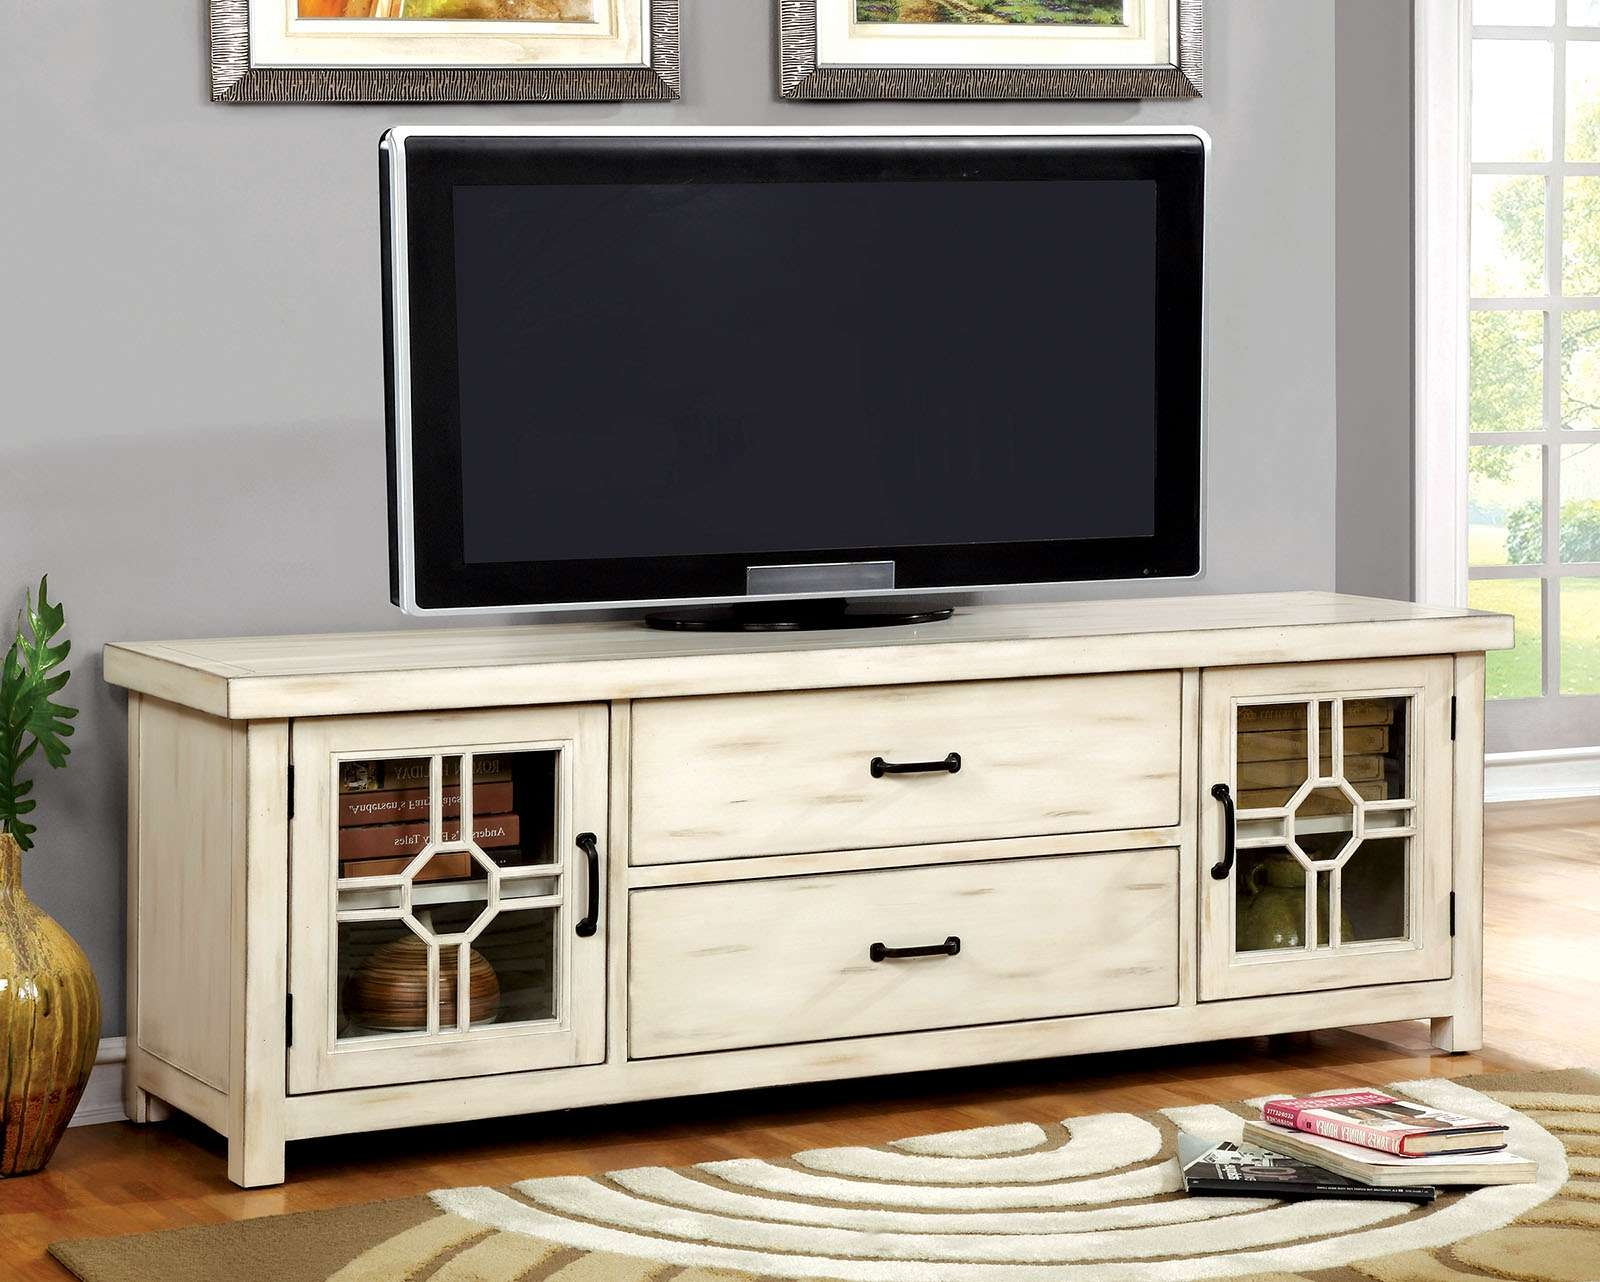 Furniture Of America Cm5230 Antique White Lift Top Finish Tv Stand Pertaining To Rustic White Tv Stands (View 10 of 15)